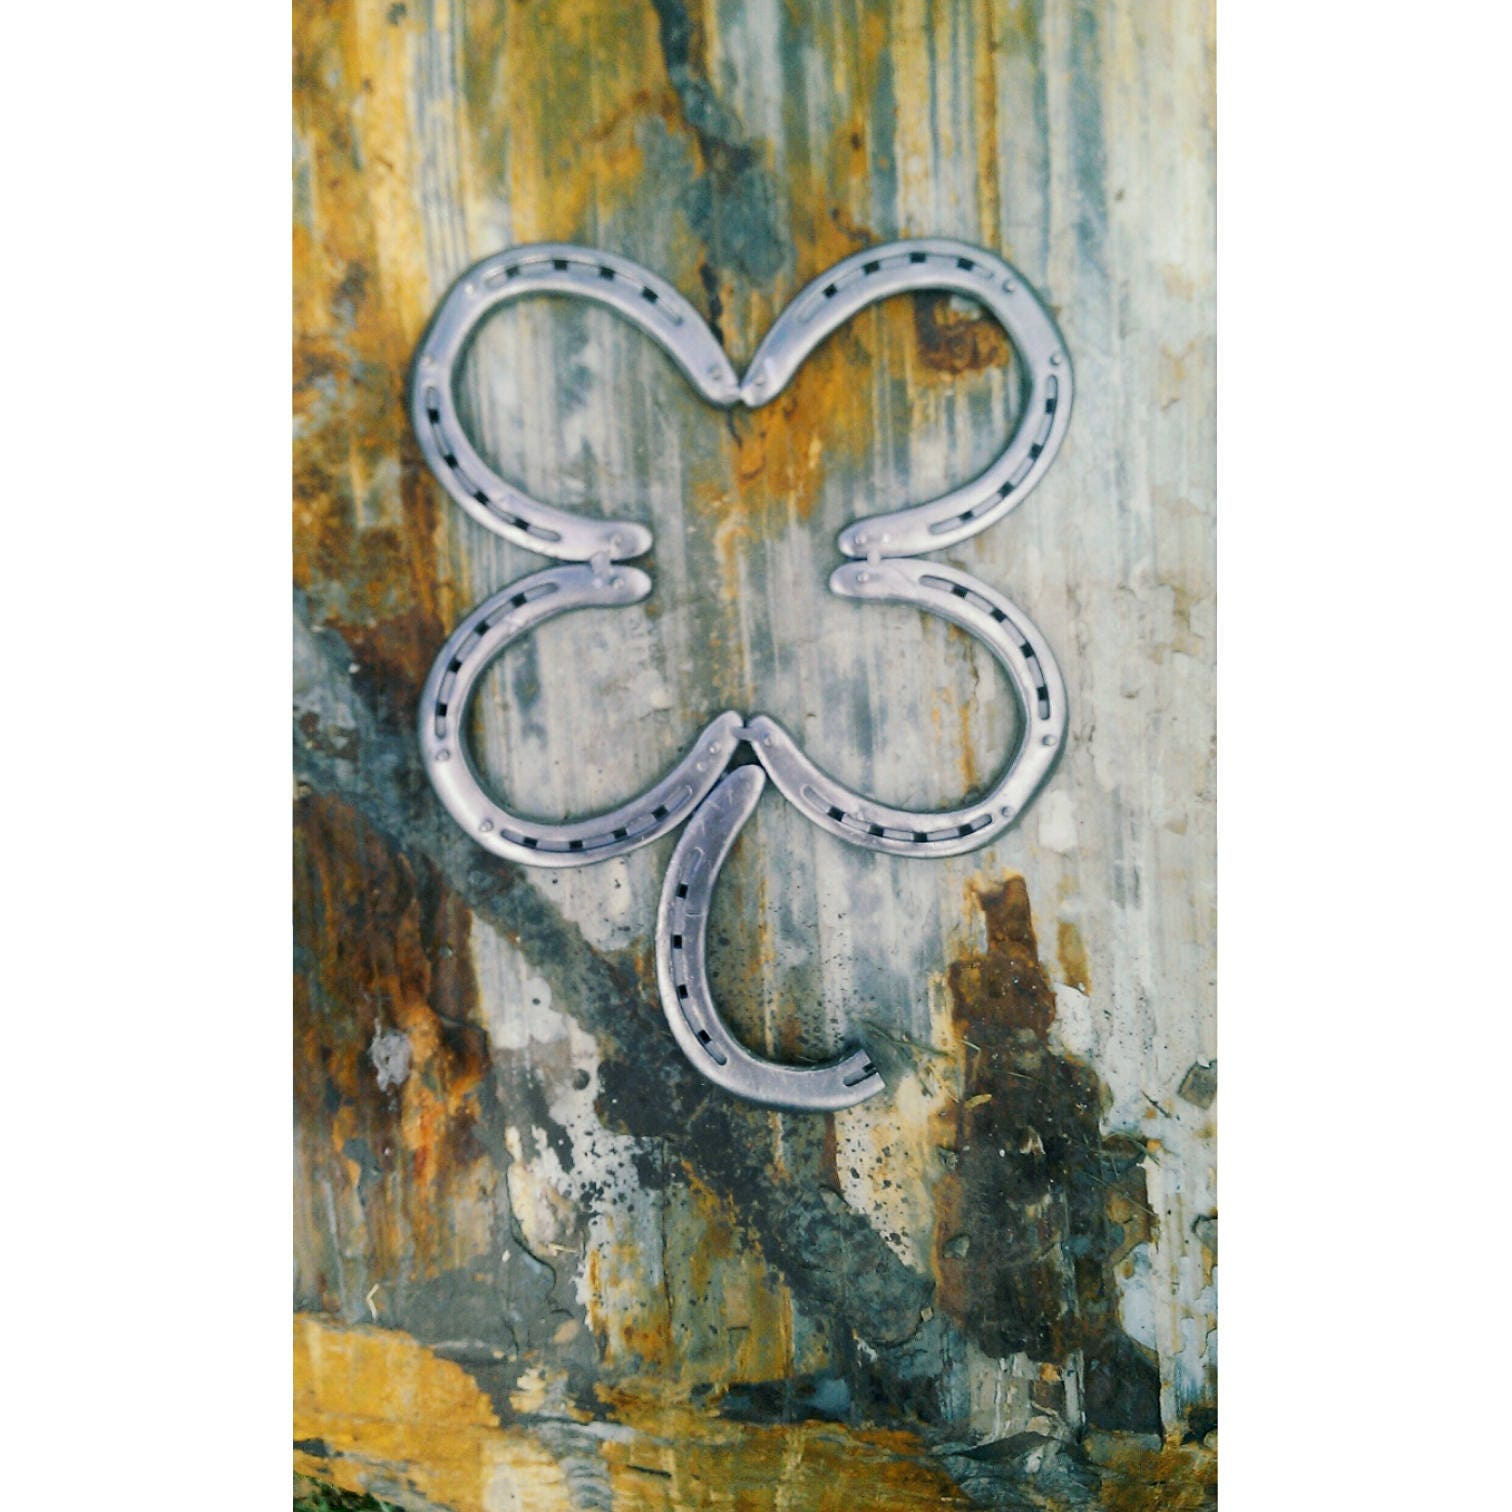 Country Home Decor Horse Decor Irish Horseshoe Clover Metal